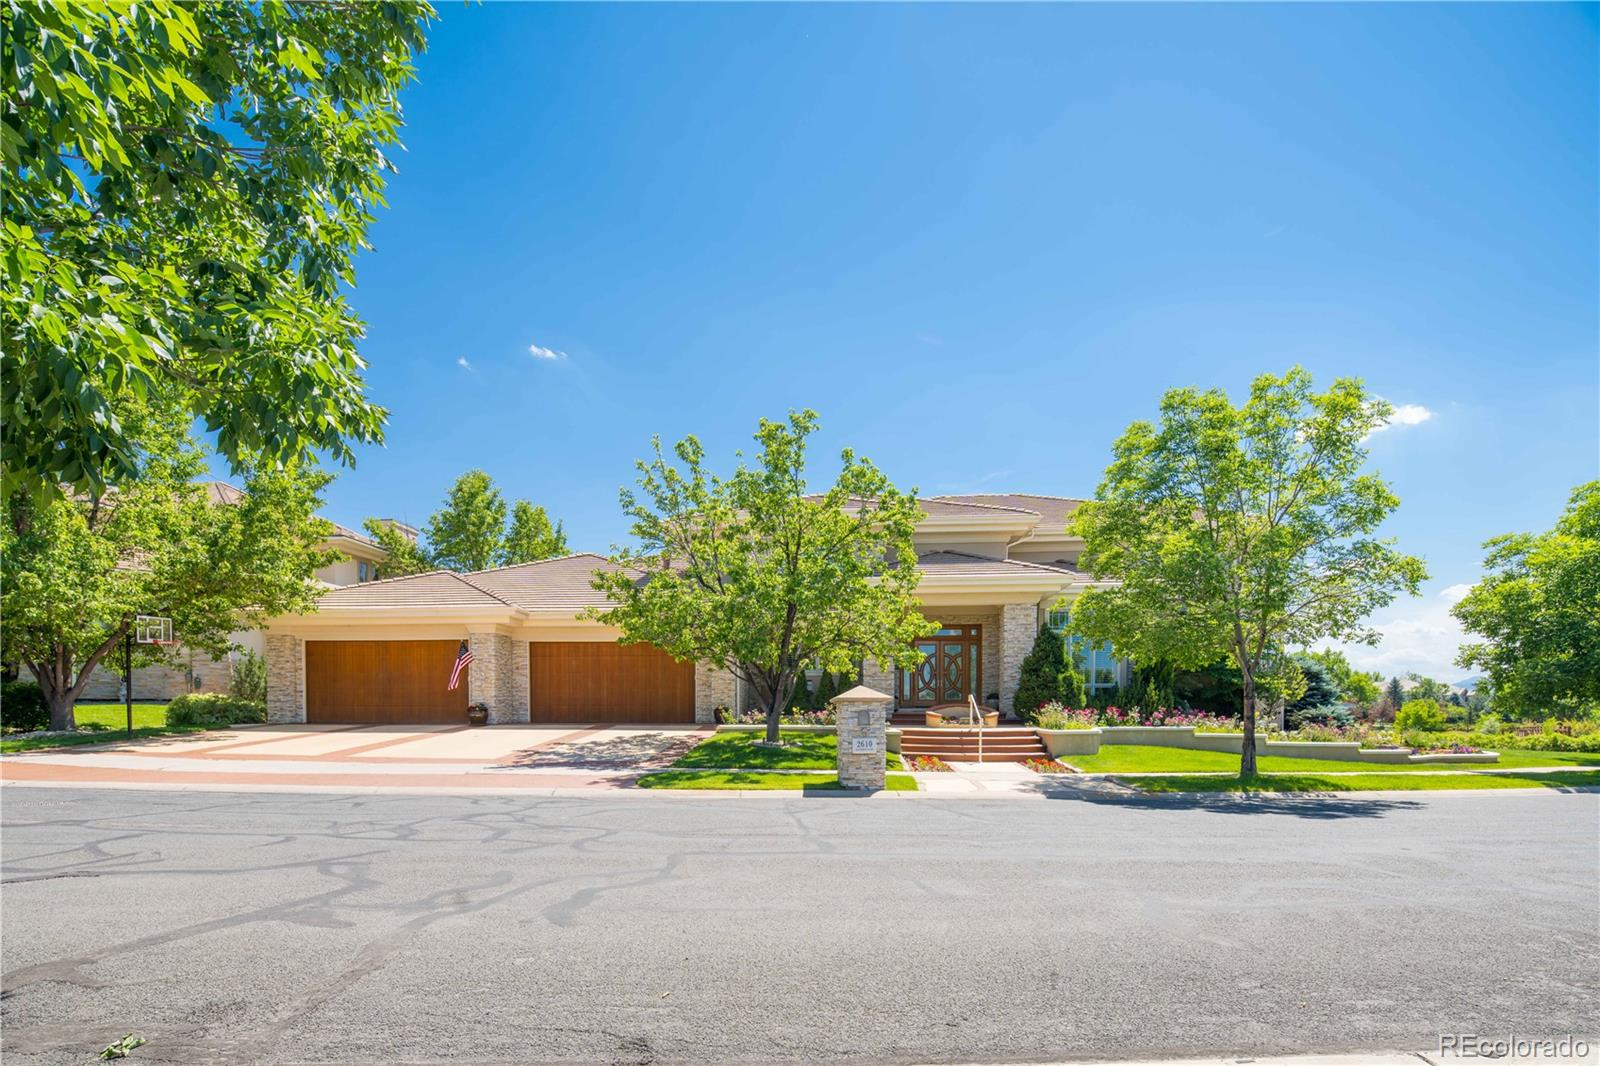 2610 Ranch Reserve Ridge, Westminster, CO 80234 - Westminster, CO real estate listing